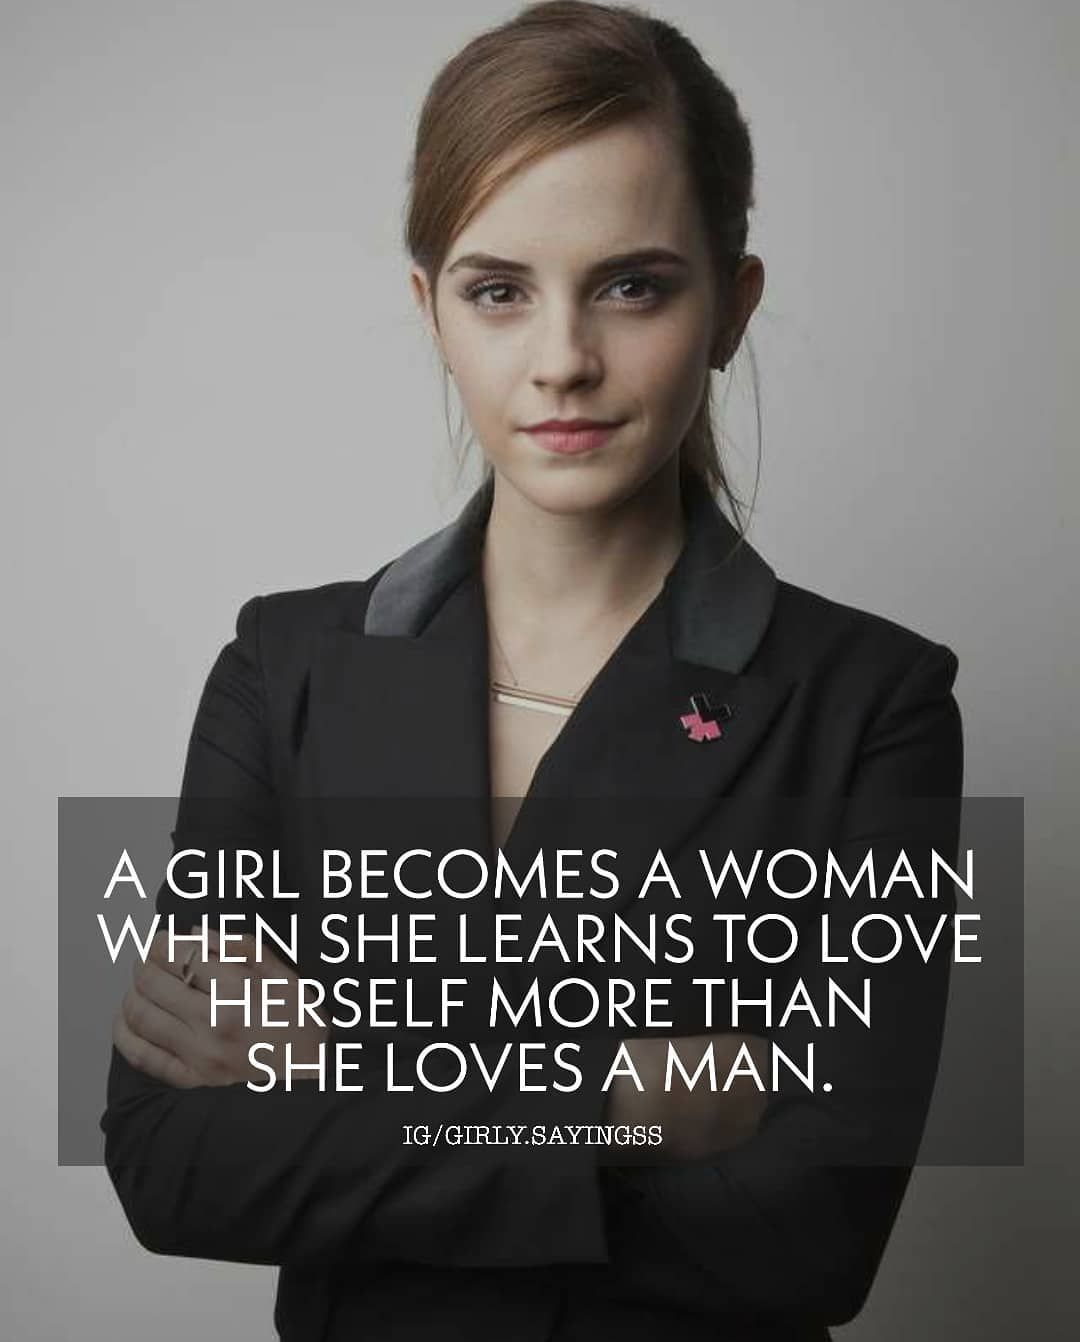 2100 Girls Sayings Attitude Girls Status Download In 2020 Woman Quotes Genius Quotes Girl Quotes